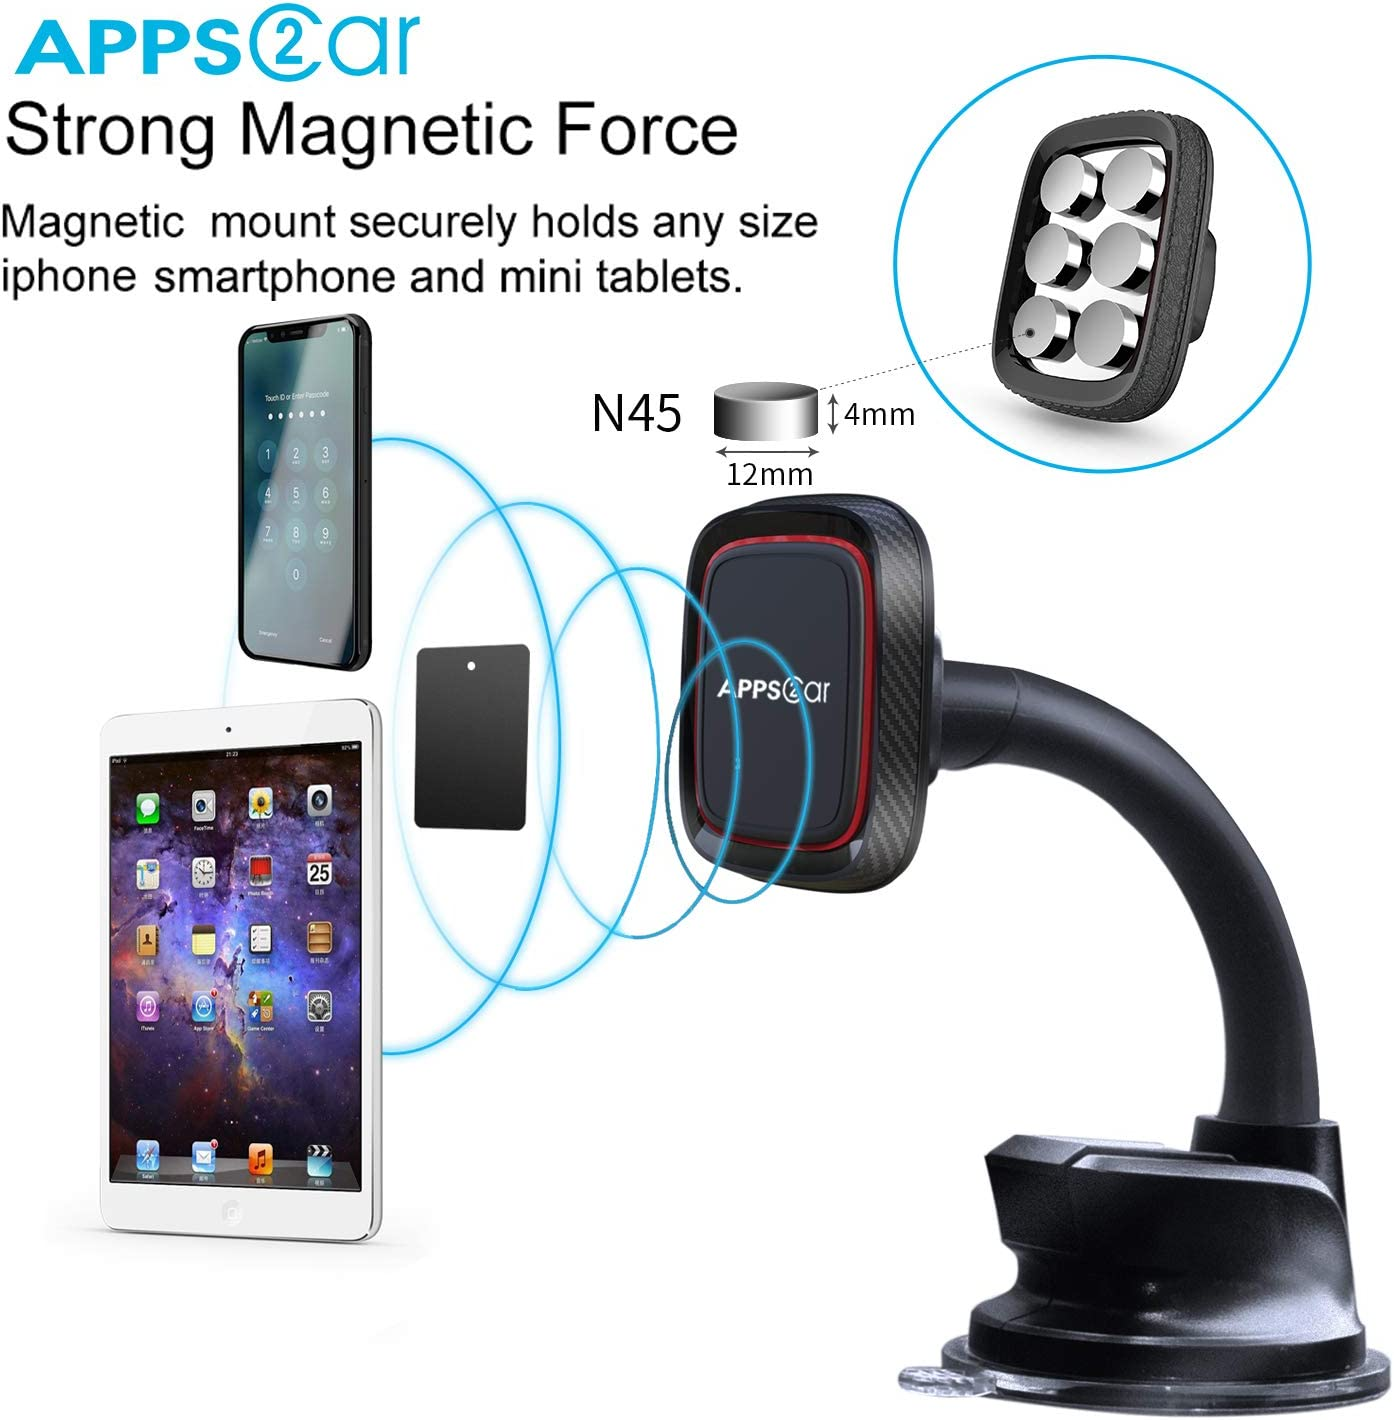 Car Magnetic Phone Holder Strong Suction Cup APPS2Car XL Universal Dashboard /& Windshield Magnetic Car Phone Mount with 6 Strong Magnets Com//W Larger and Heavy Devices. Magnetic Phone Car Mount